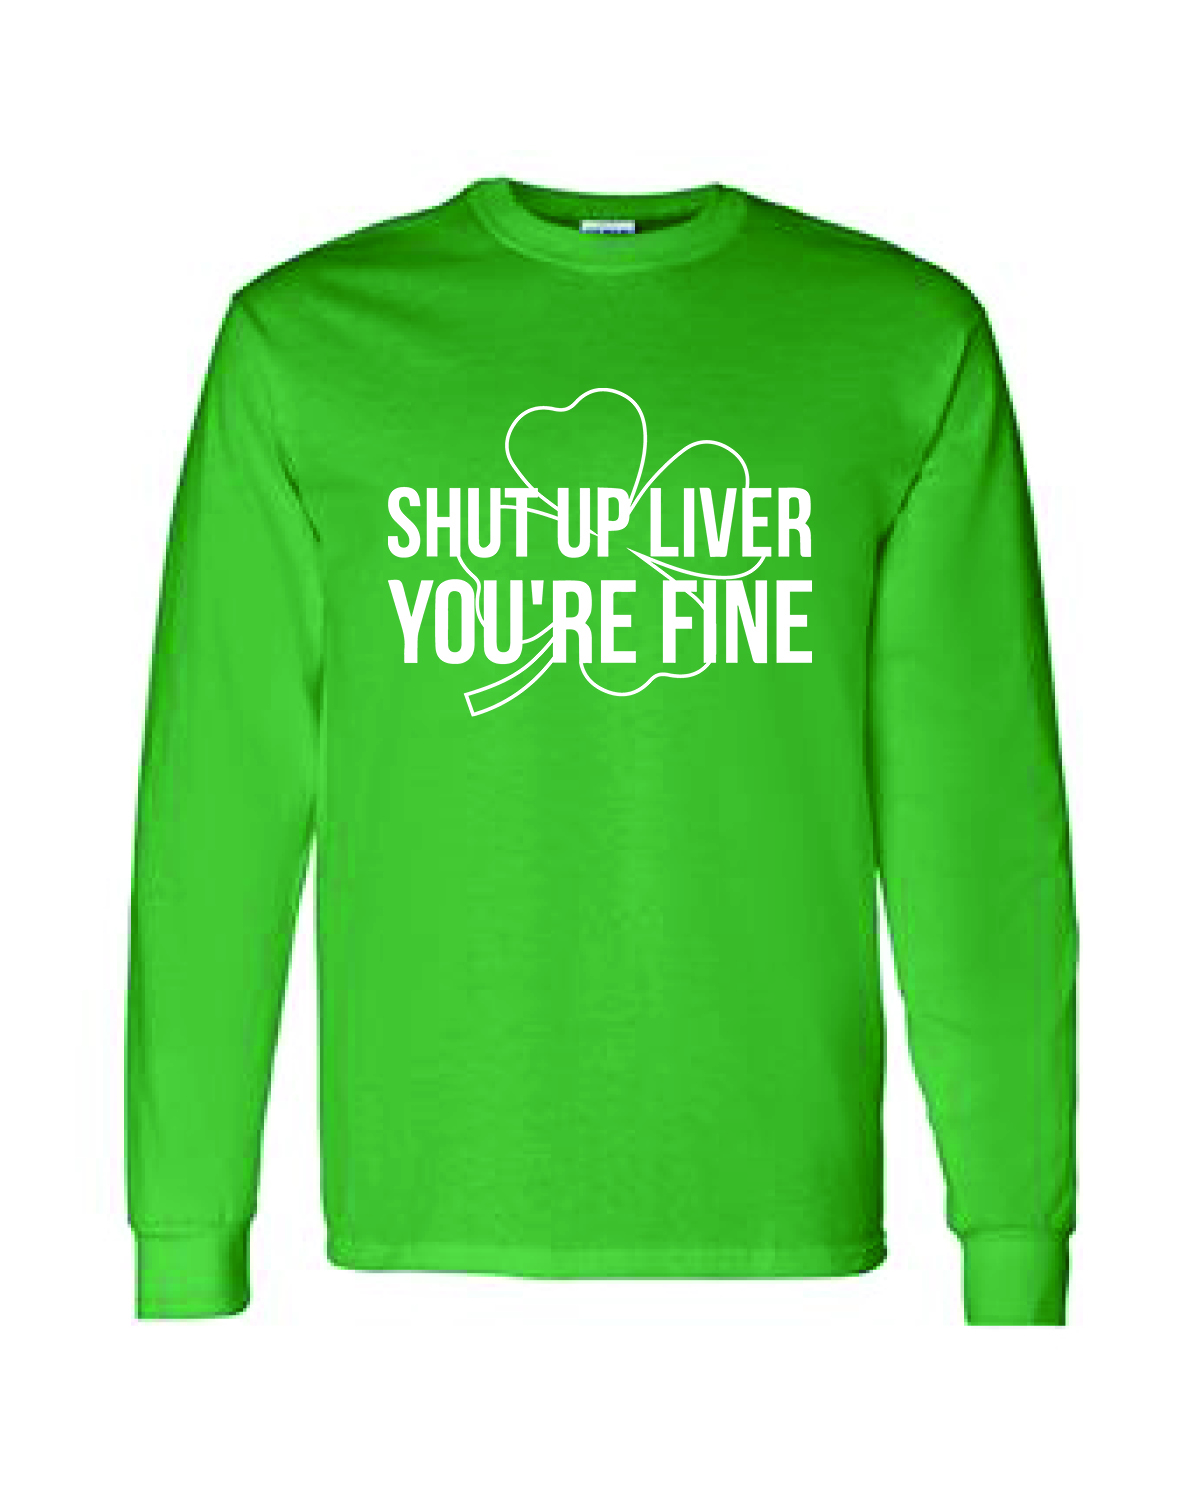 St. Patty's Day Long Sleeve Tee - Shut Up Liver